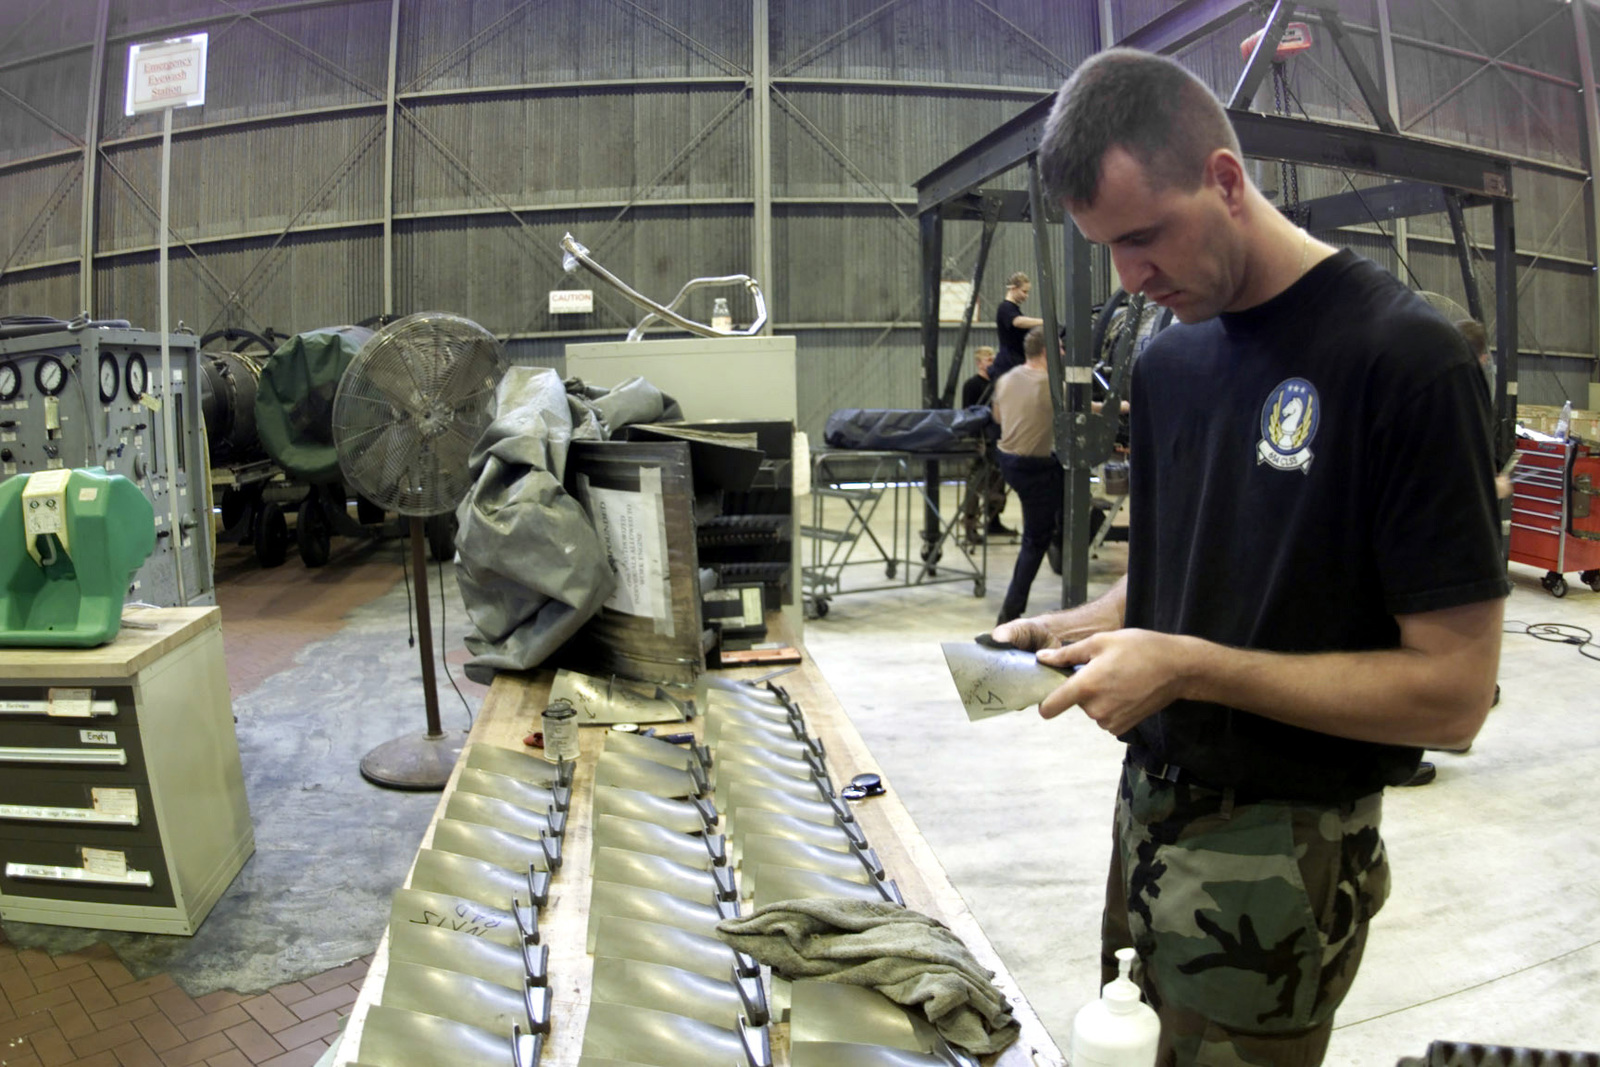 US Air Force STAFF Sergeant Shon Wagner, a Jet Engine Mechanic Craftsman of the 654th Combat Logistics Support Squadron, Tinker Air Force Base, Oklahoma, inspects the blades recently removed from an F110-GE-100 engine at Aviano Air Base, Italy, on August 3rd, 2000